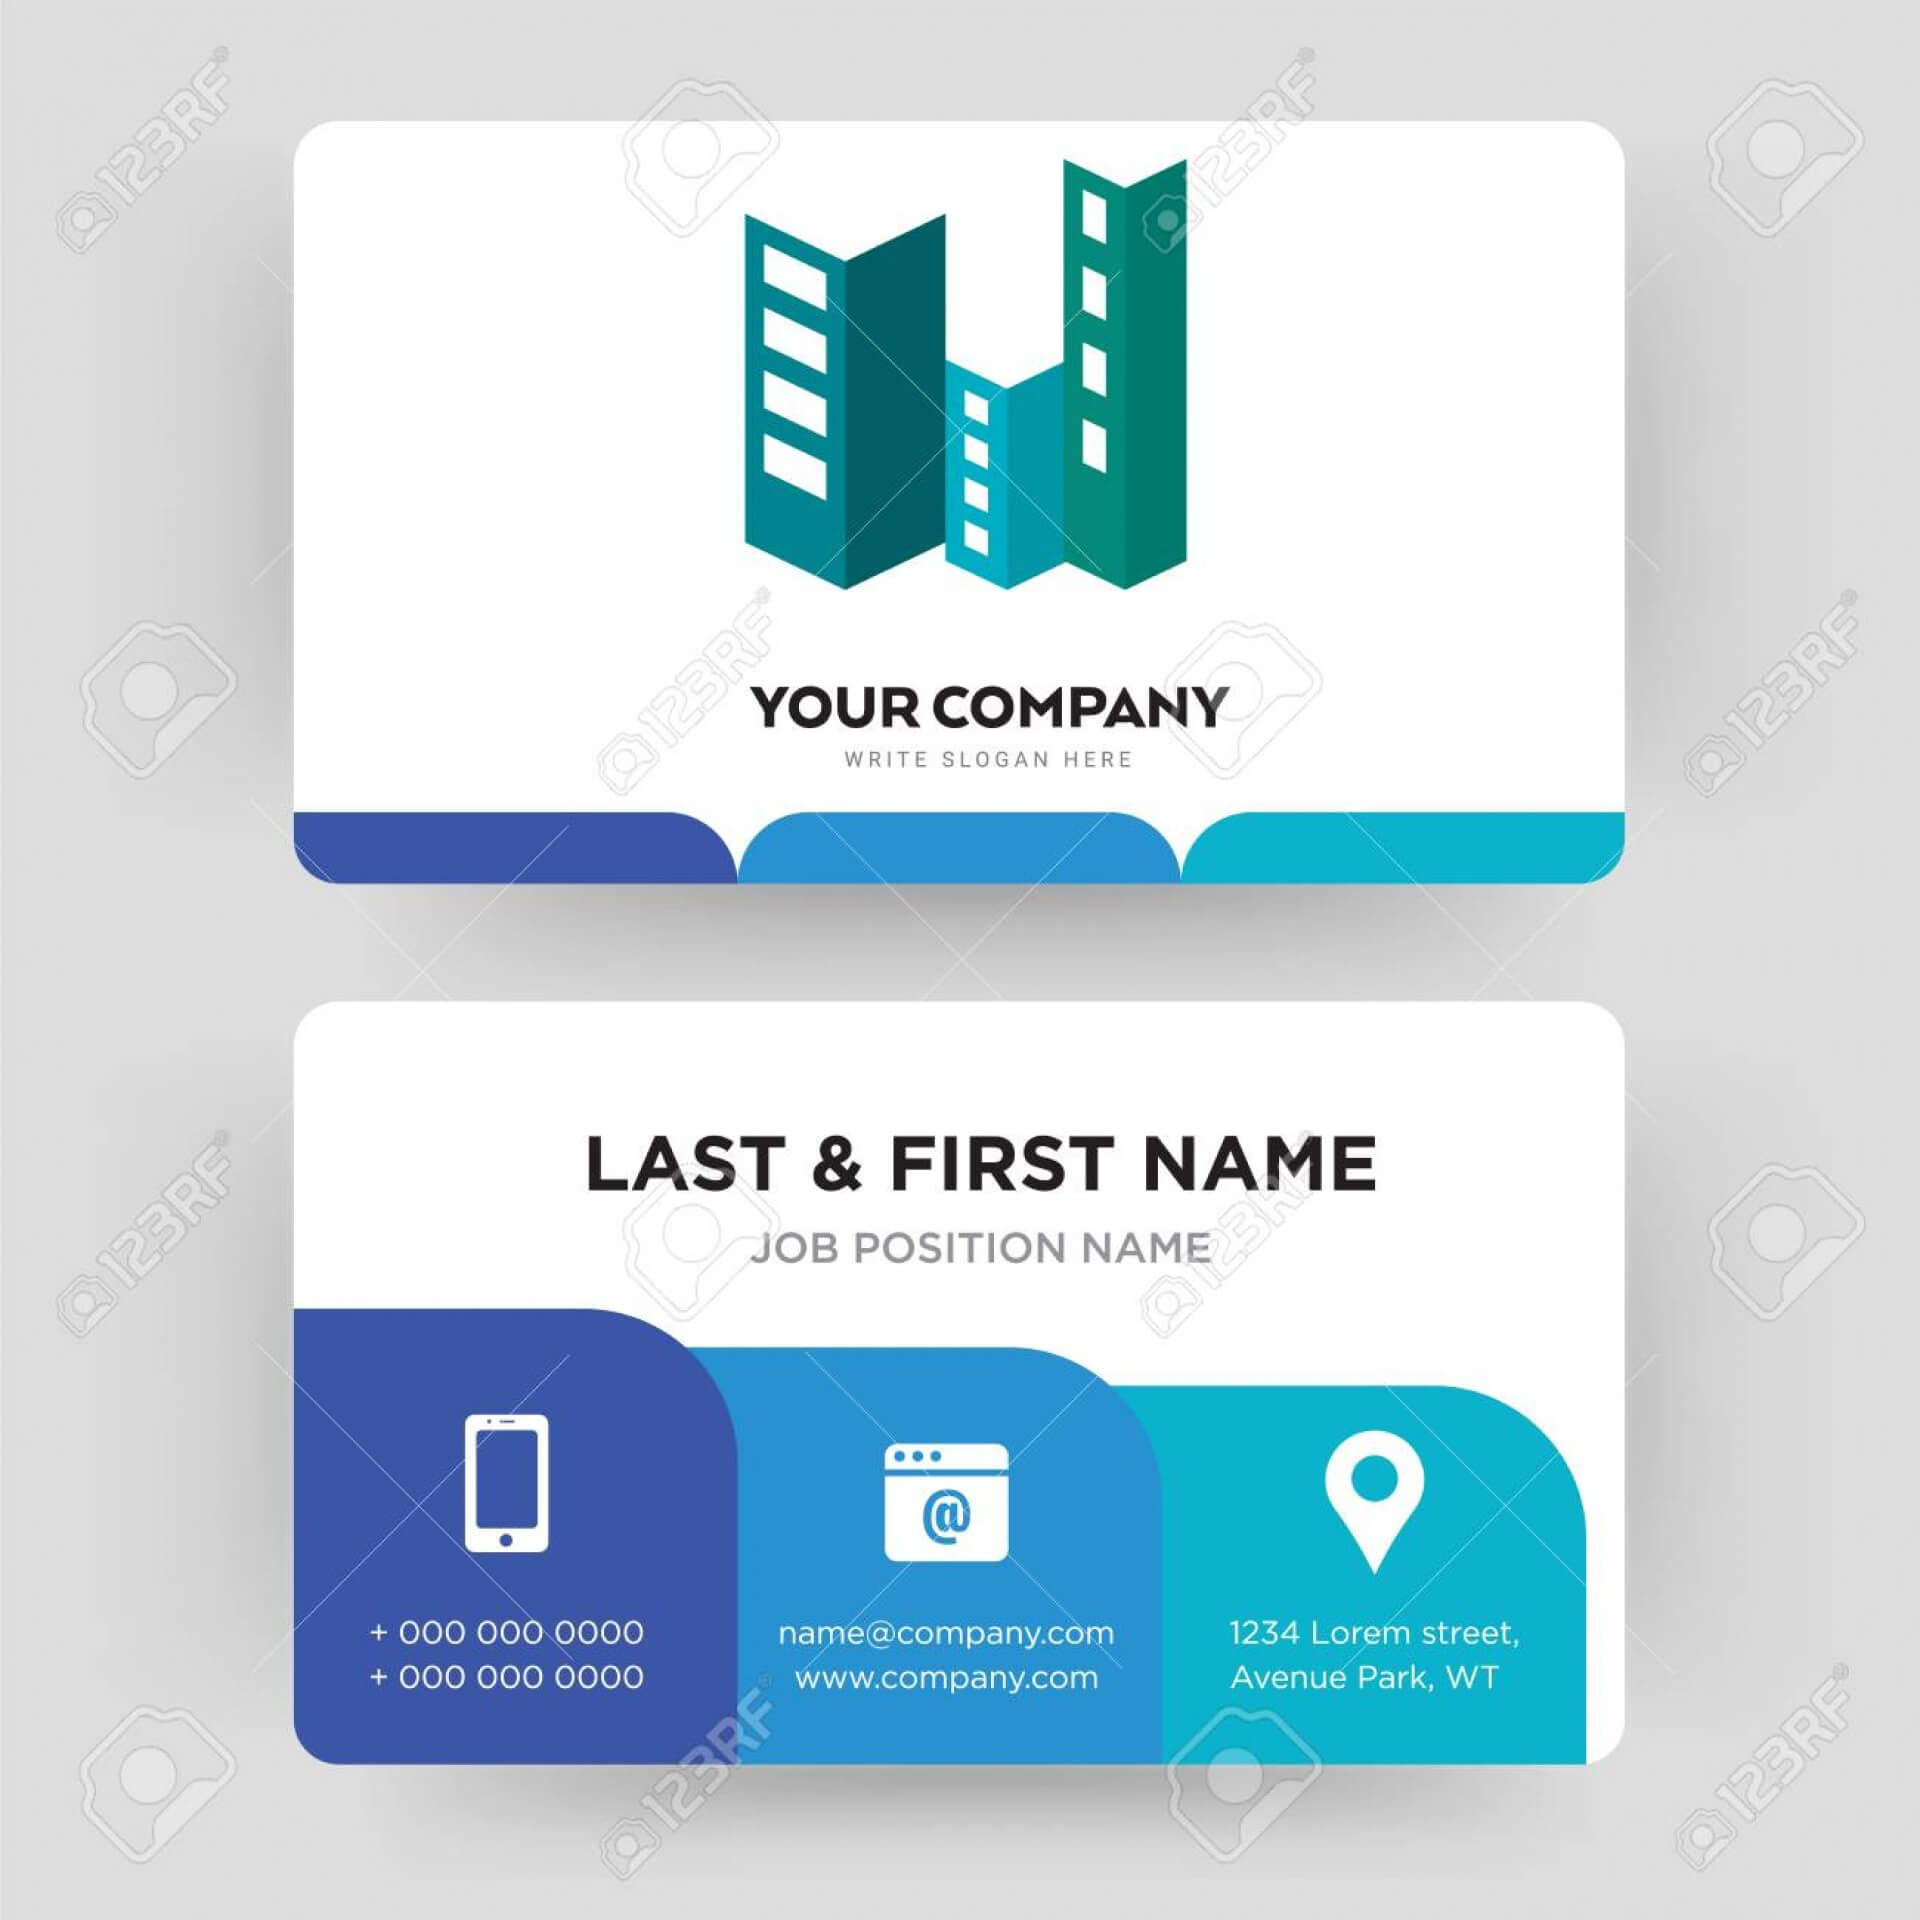 002 Template Ideas Construction Business Card Templates Pertaining To Construction Business Card Templates Download Free